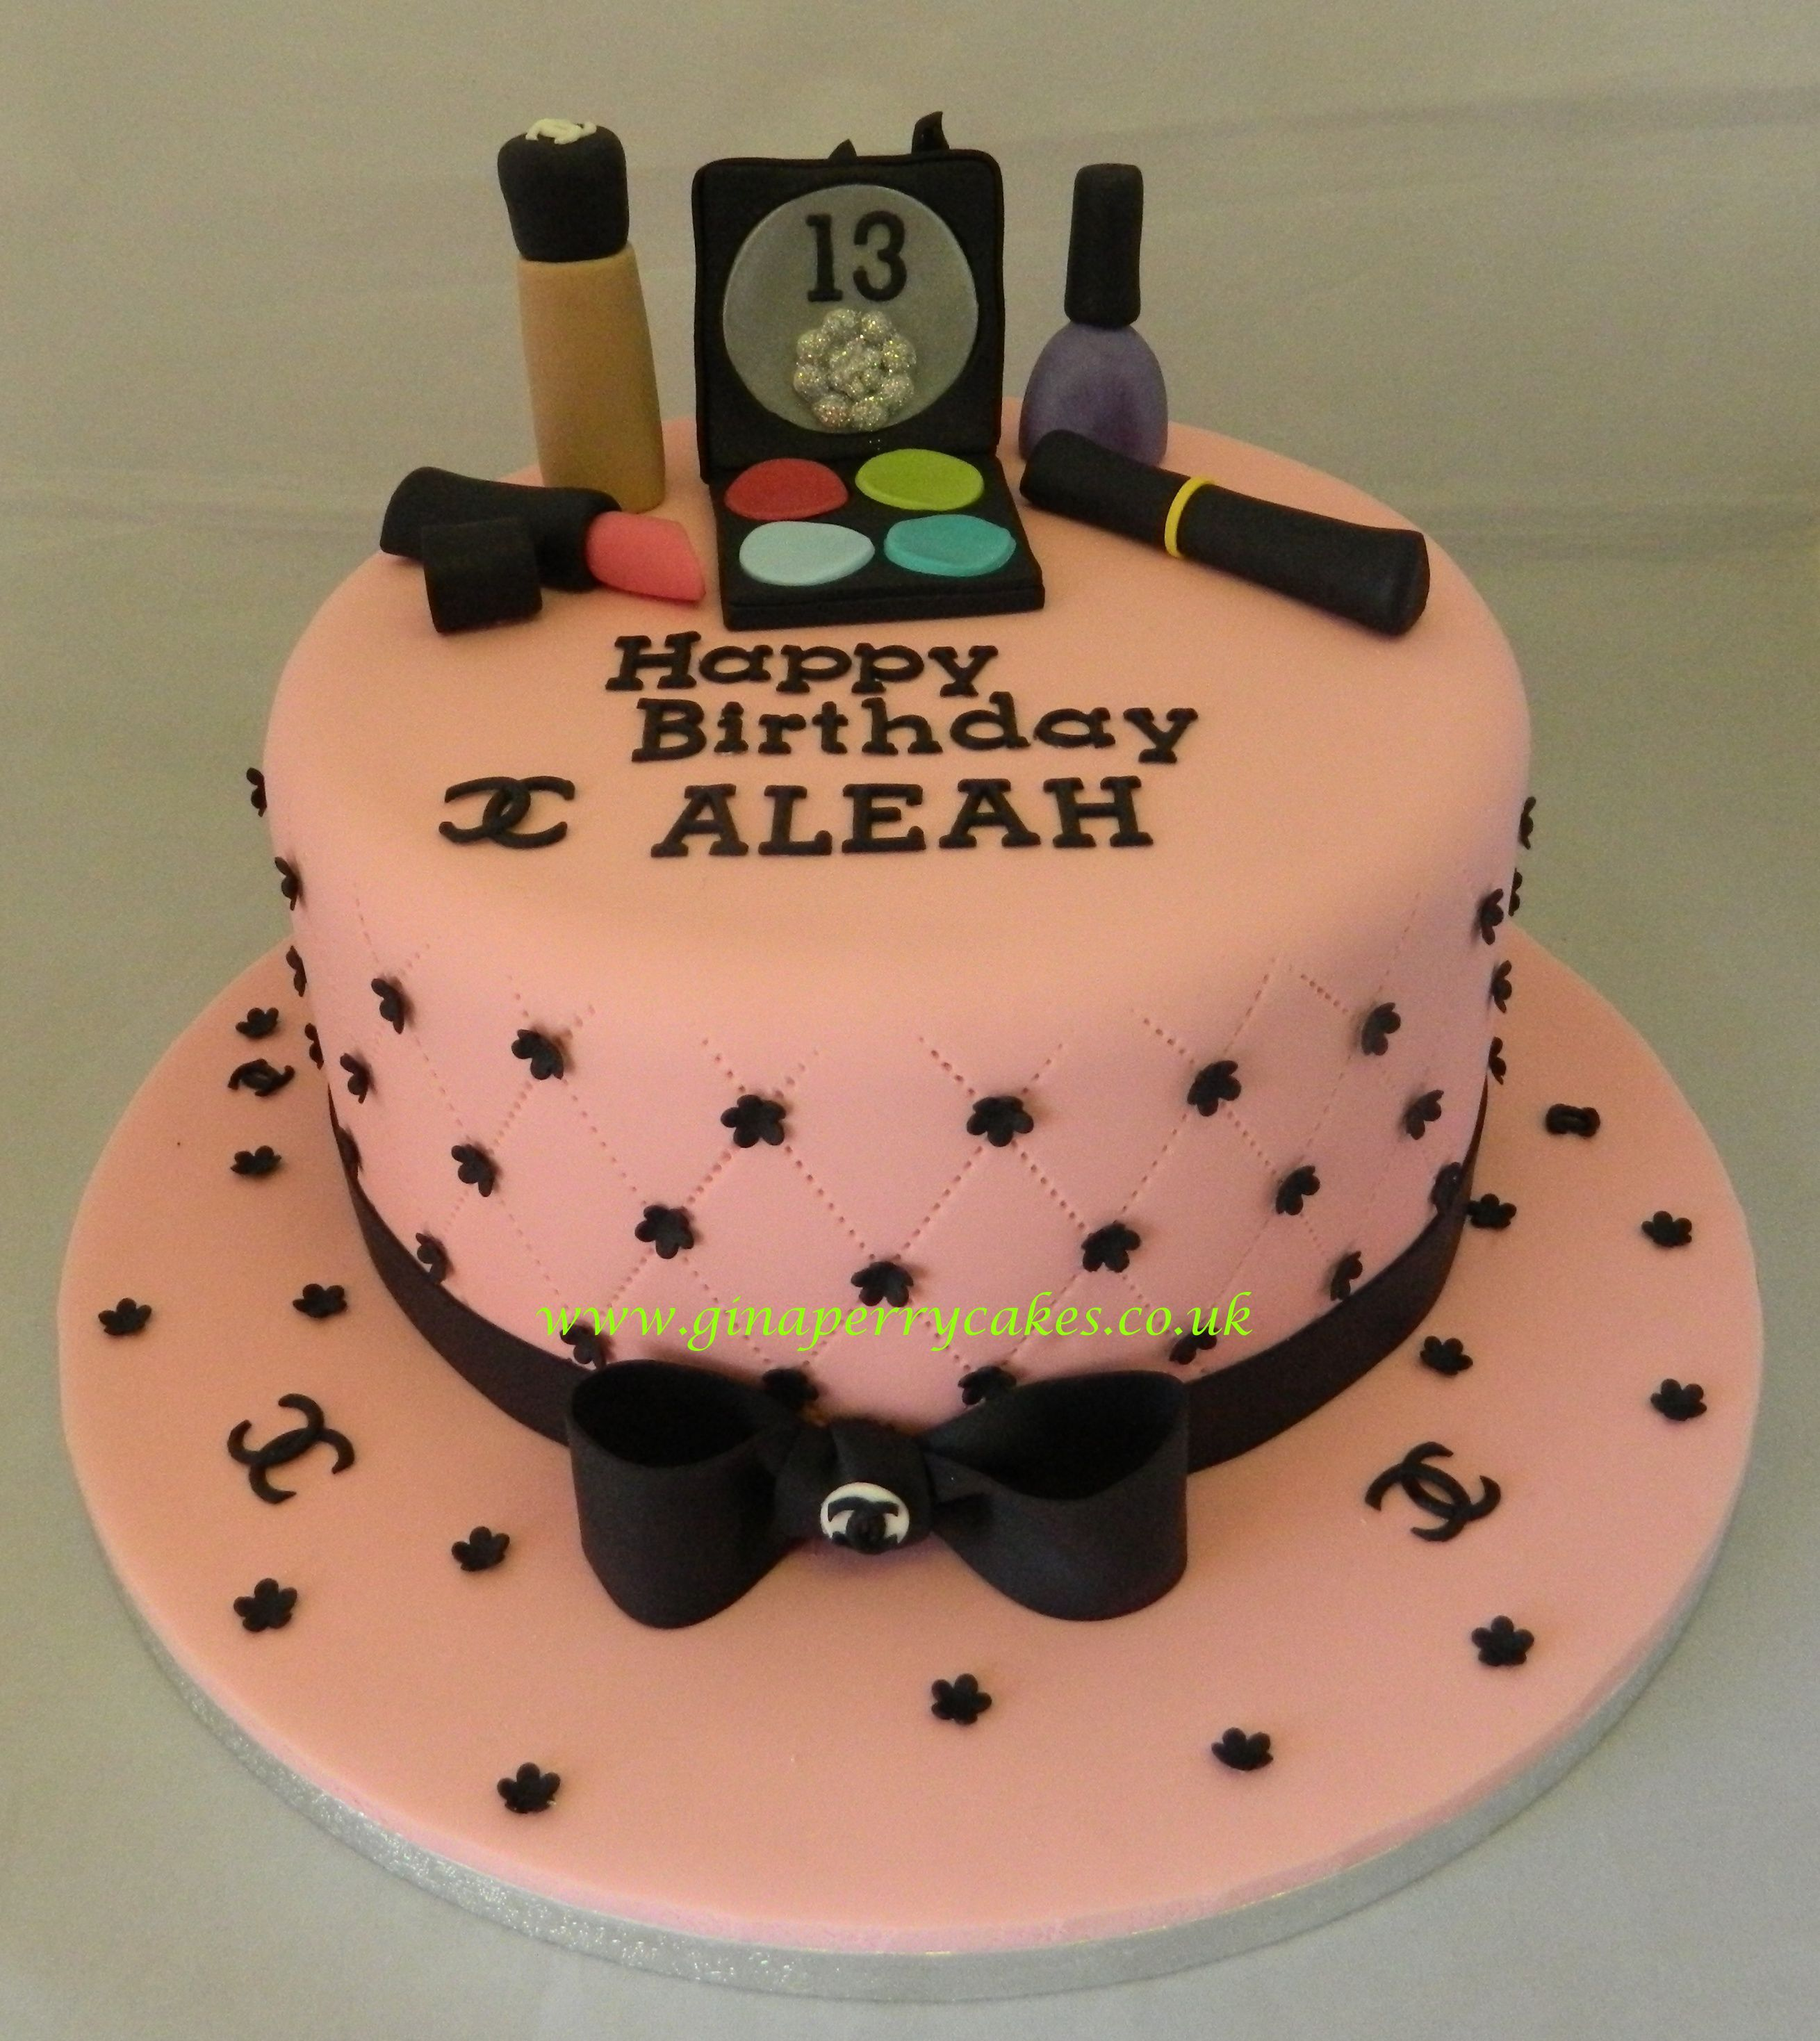 Wondrous Make Up Themed Birthday Cake For A 13 Year Old 13 Birthday Cake Funny Birthday Cards Online Inifodamsfinfo